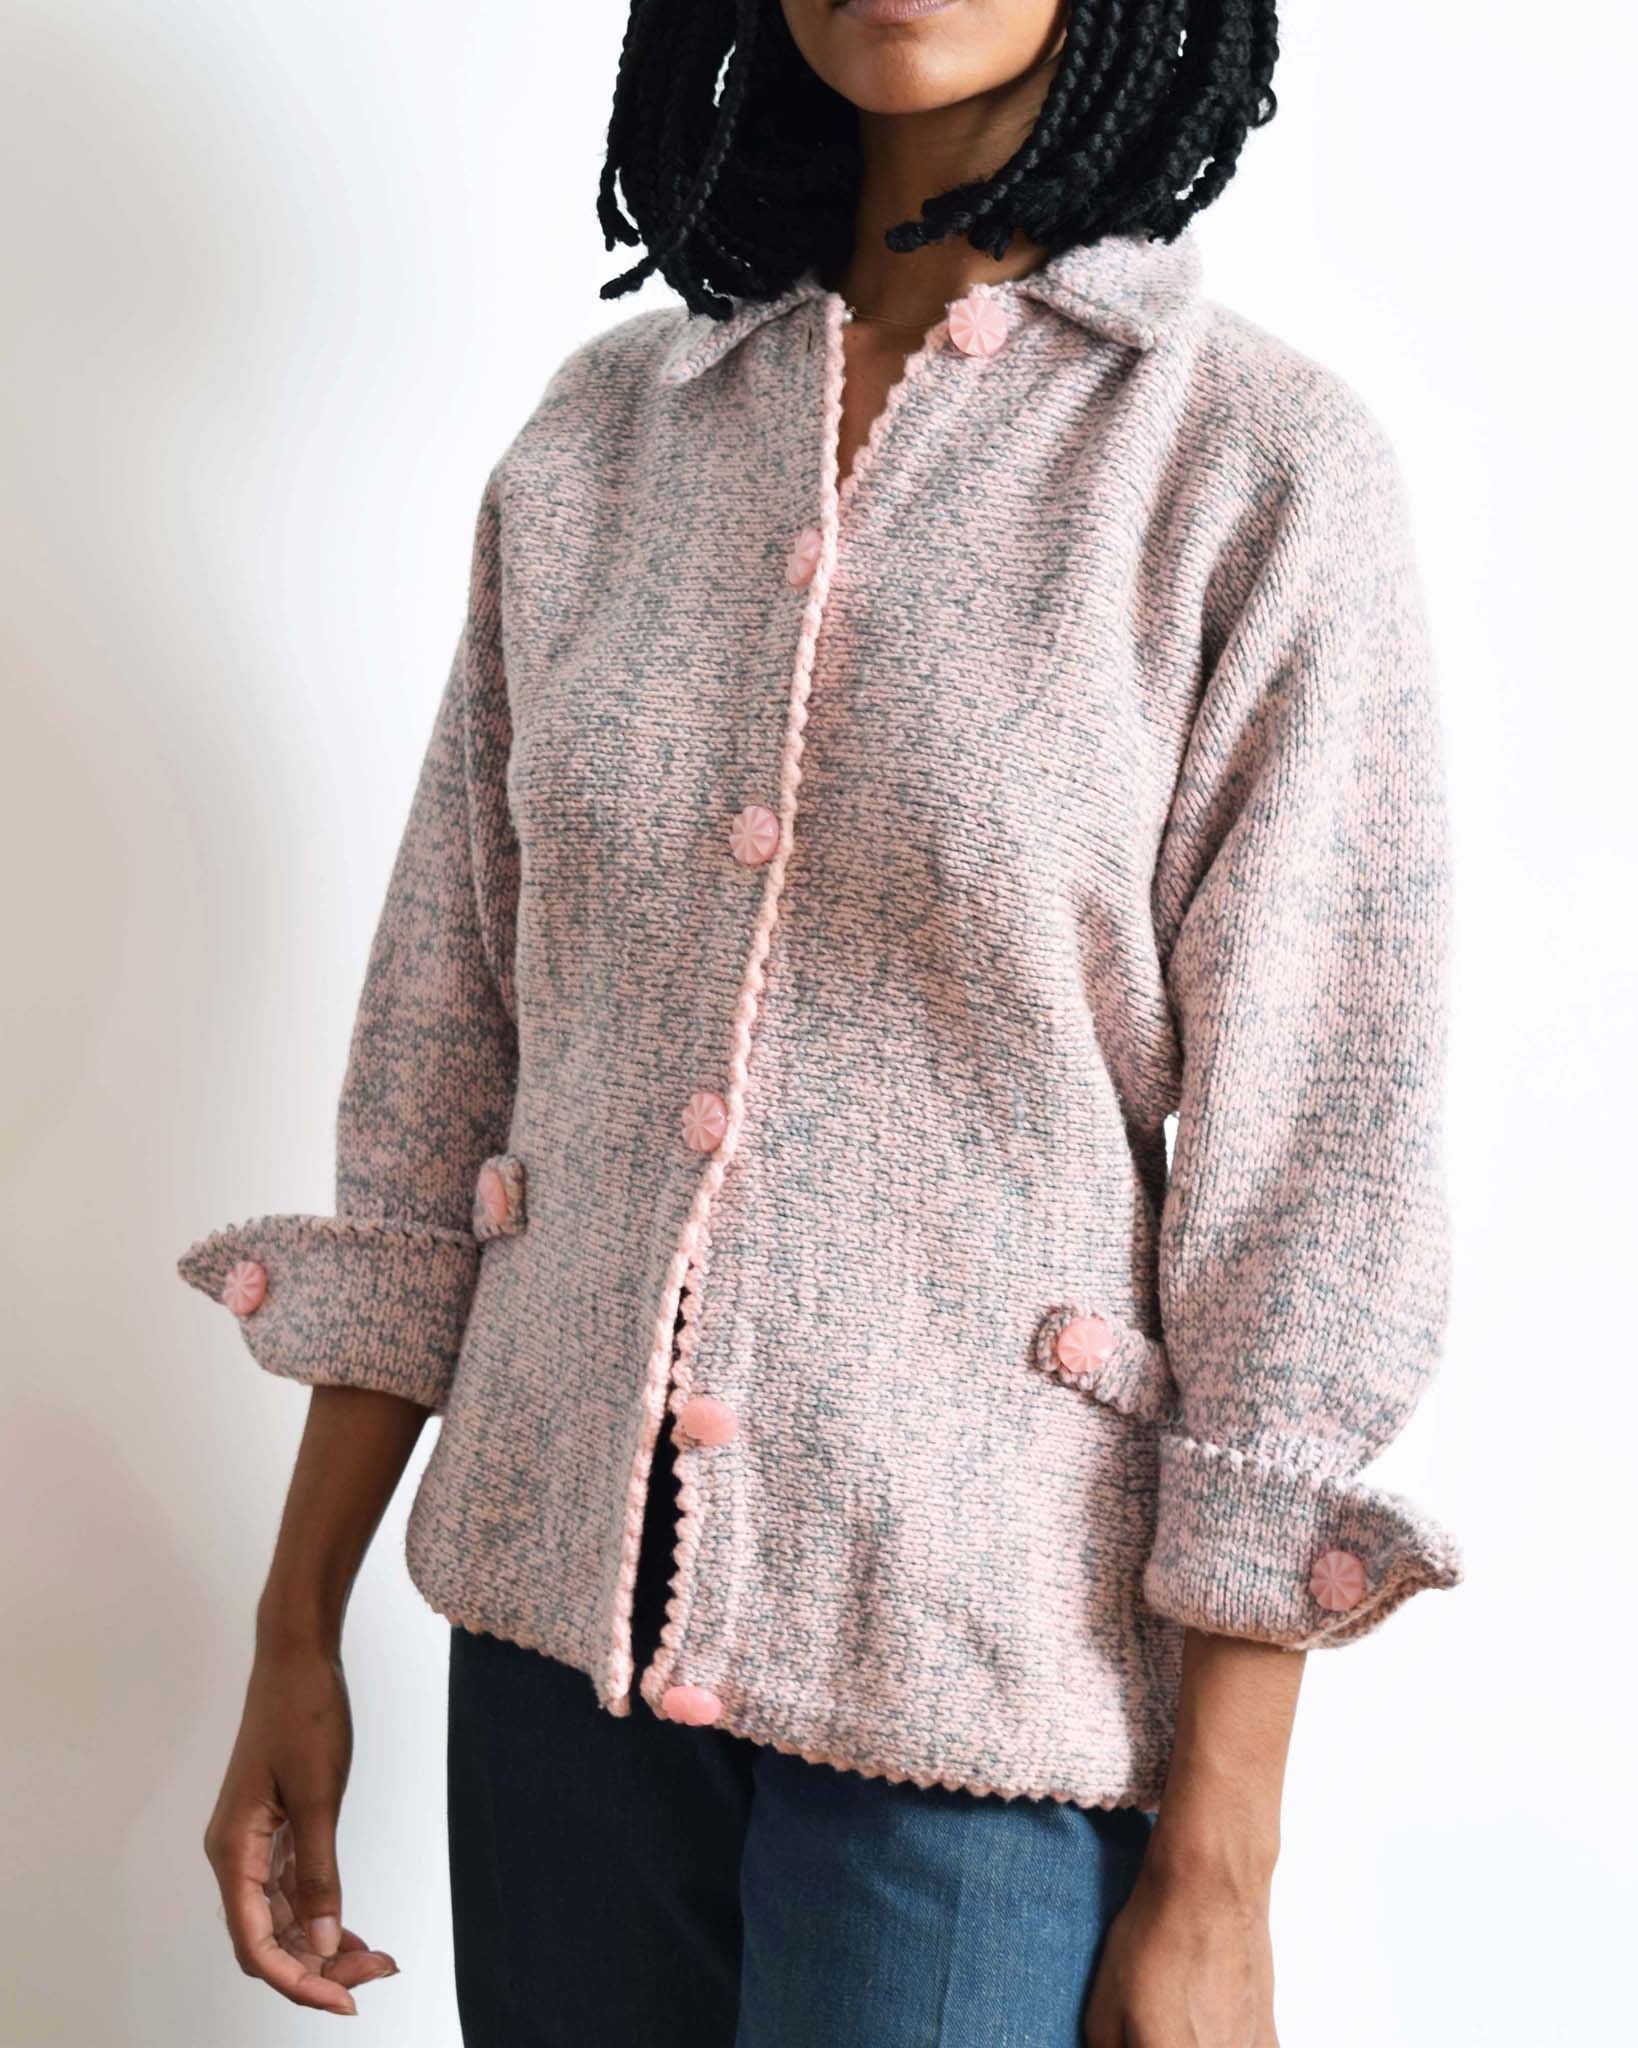 Vintage 1940s Hand Knit Cardigan